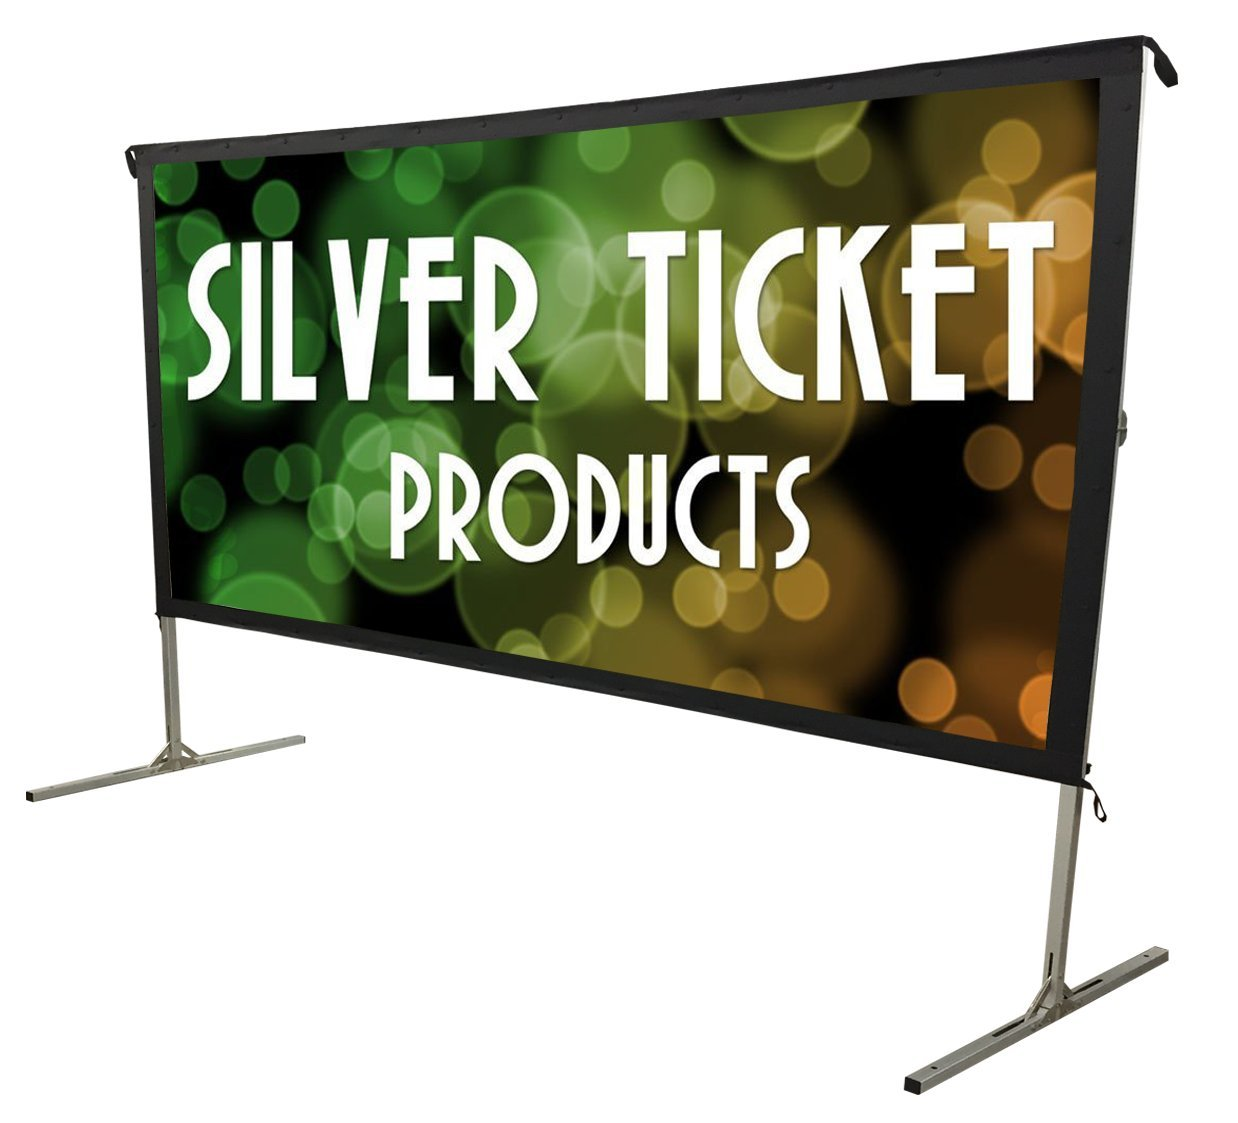 STO-169120 Silver Ticket Indoor/Outdoor 120'' Diagonal 16:9 4K Ultra HD Ready HDTV Movie Projector Screen Front Projection White Material with Black Back (STO 16:9, 120)